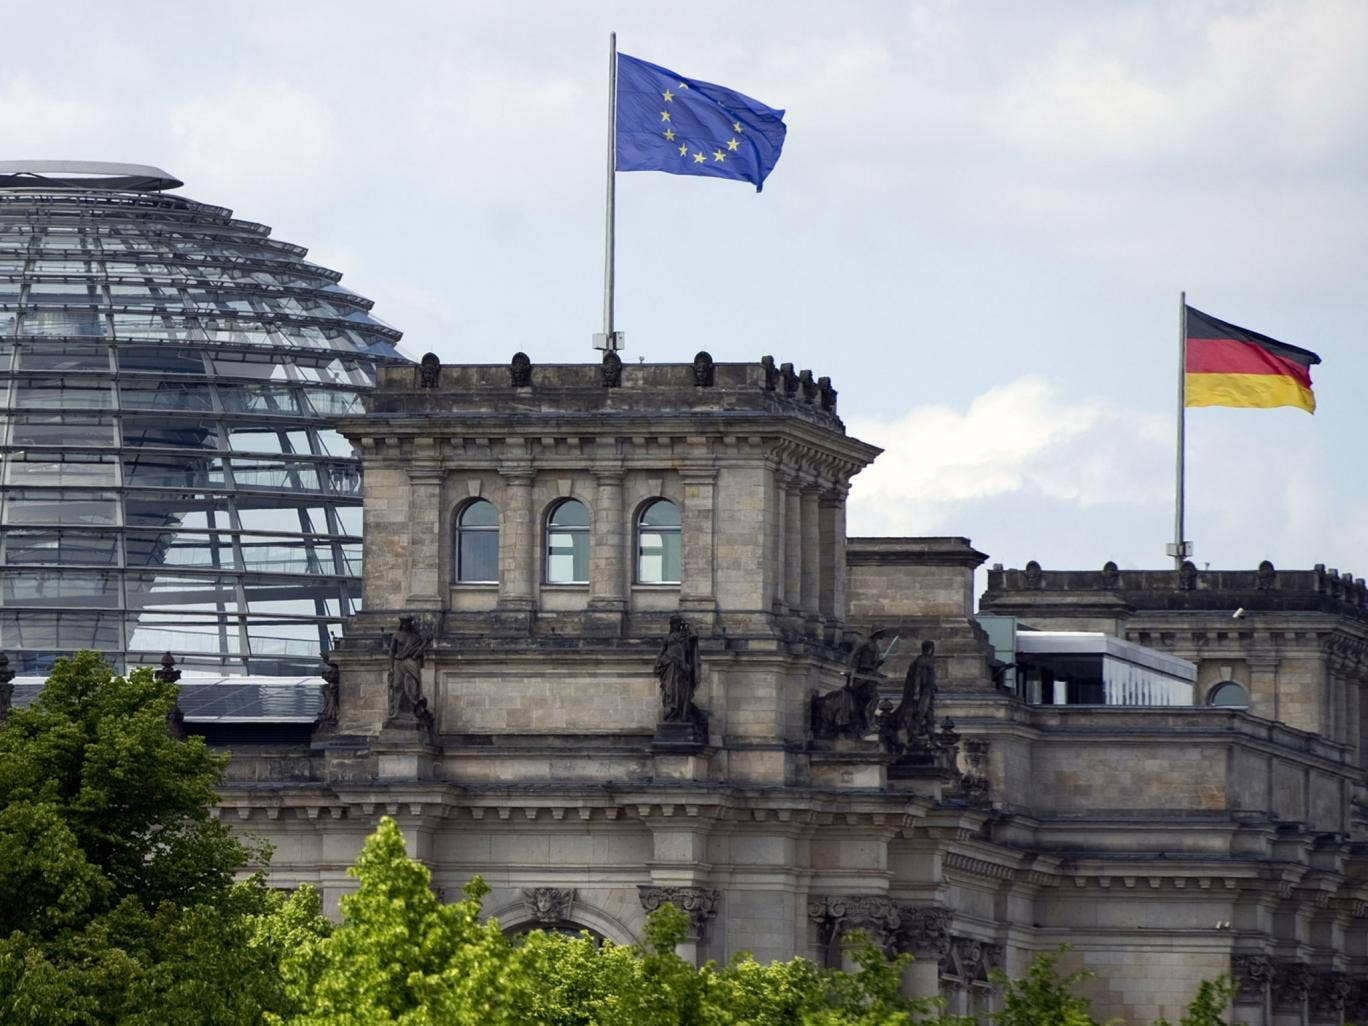 One of the towers of the Reichstag building, that hosts the Bundestag, lower house of parliament - according to Edward Snowden, some German buildings were targets of GCHQ and the NSA